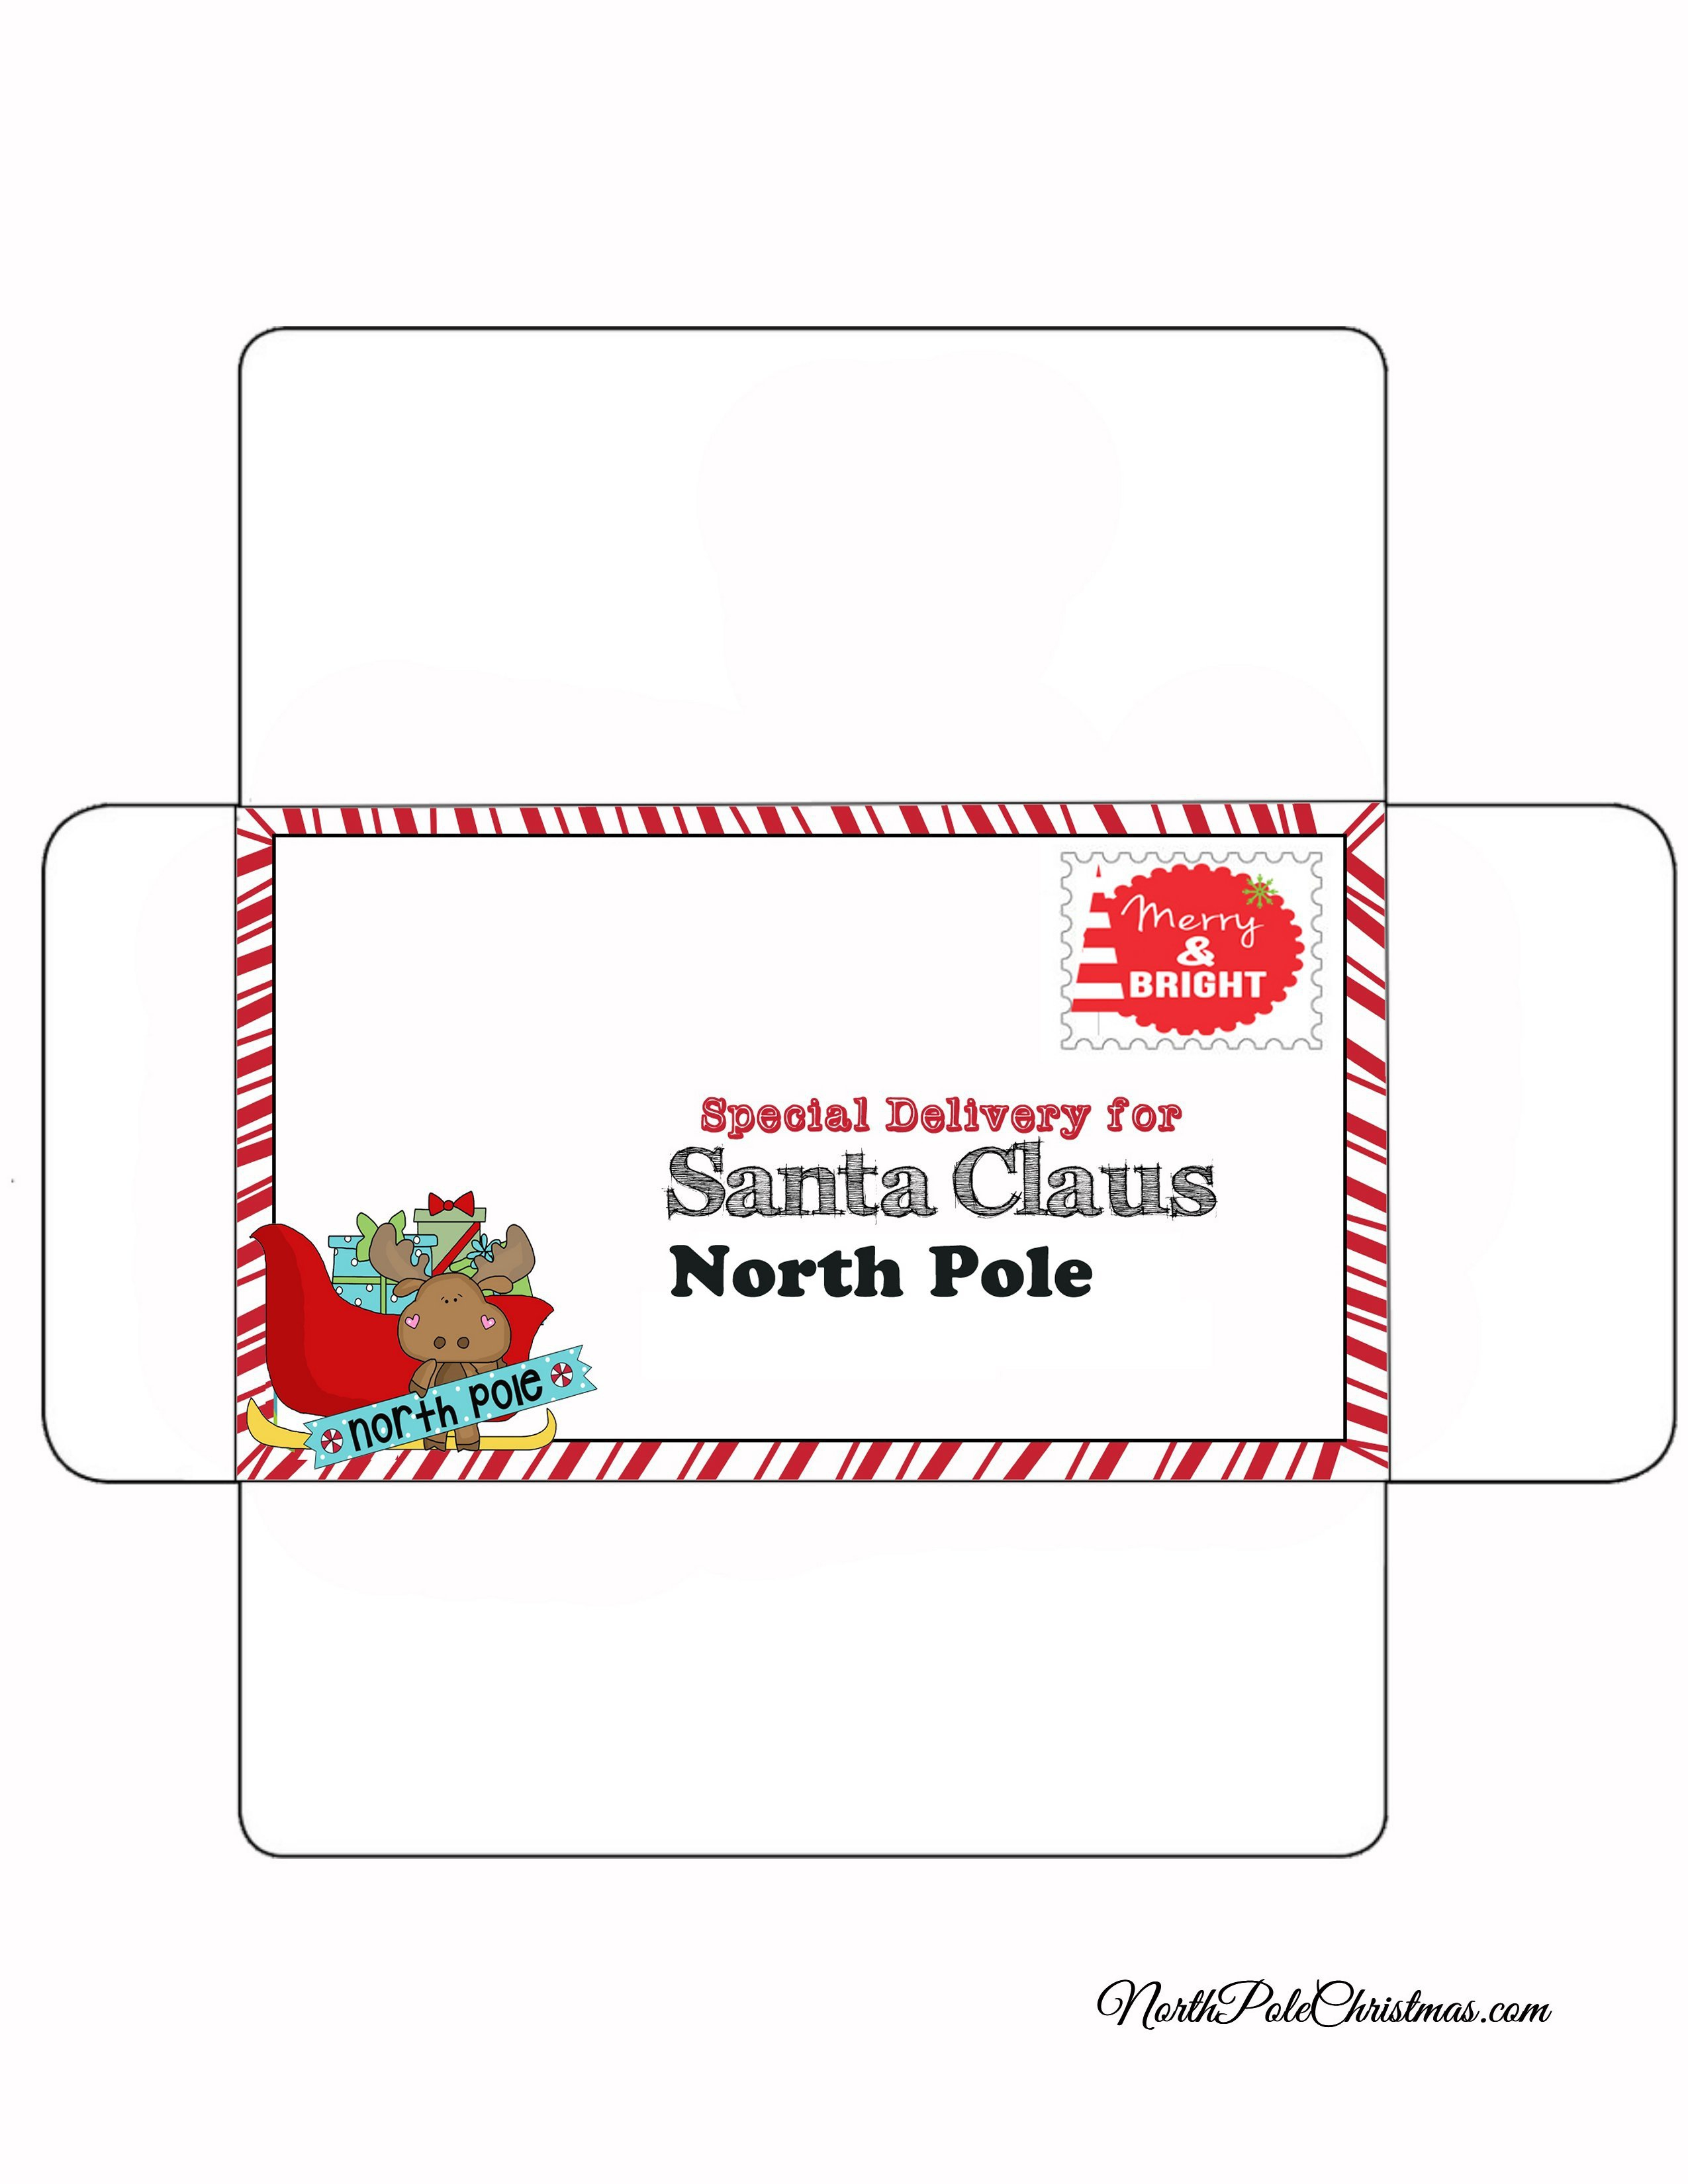 picture relating to Printable Envelopes called Free of charge Printable Santa Envelopes North Pole - Xmas Printables